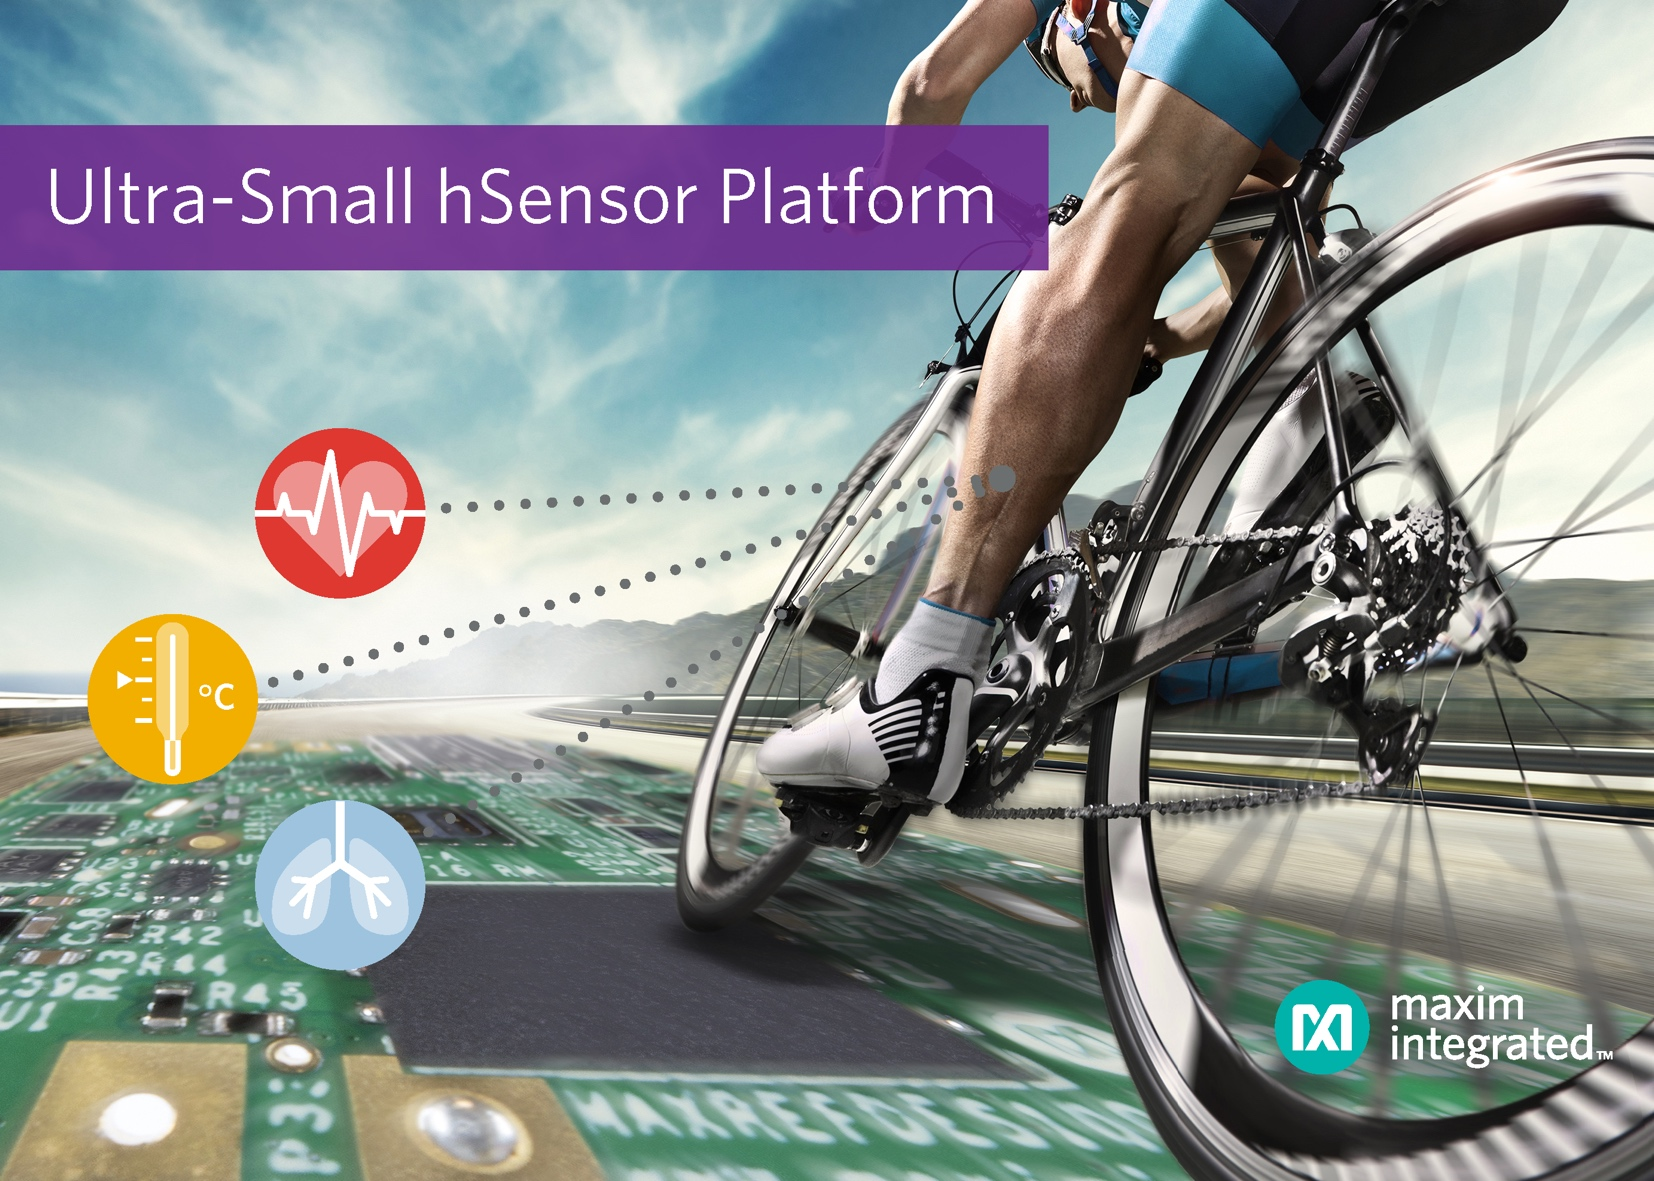 Sensor platform simplifies design of wearable applications